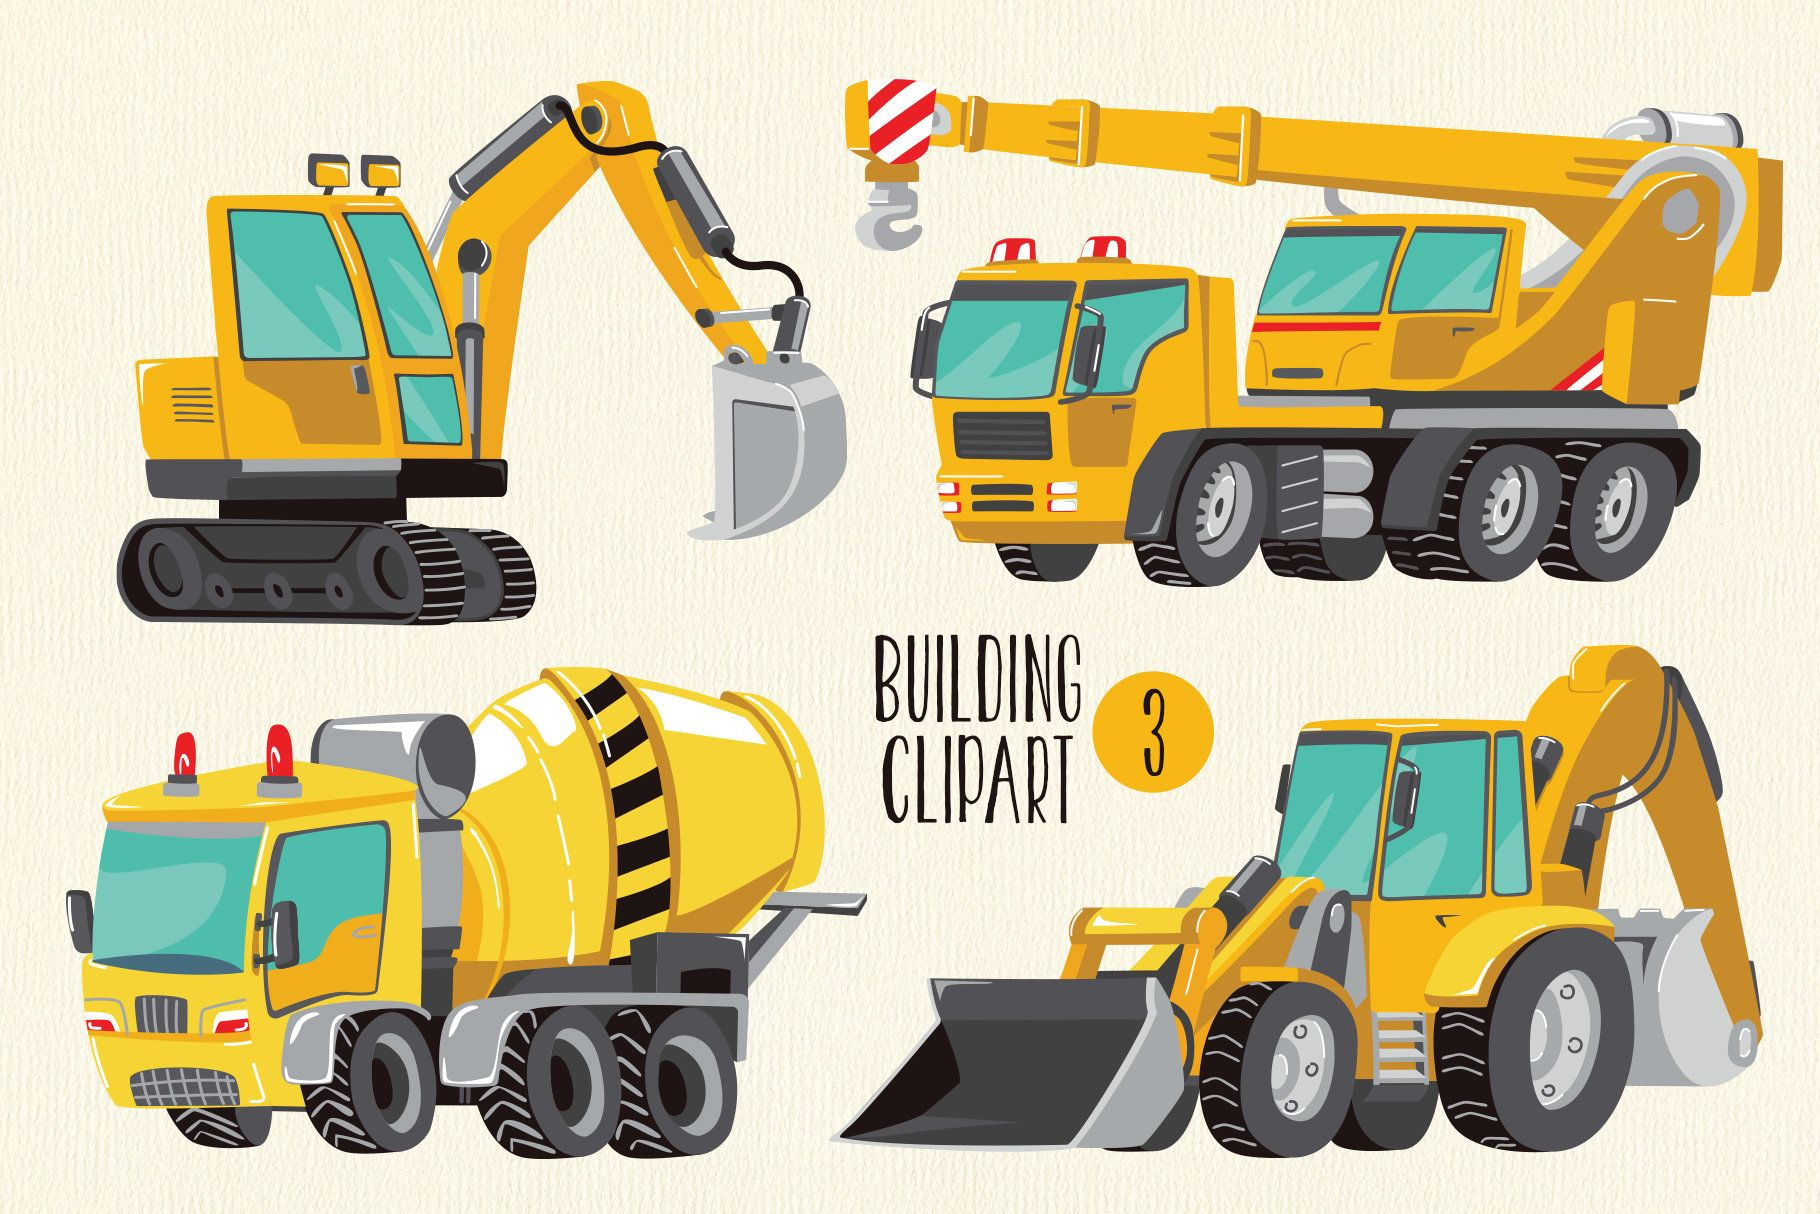 Building Clipart Png Tractor Clipart Excavator Clipart Etsy Tractor Clipart Tractors Concrete Mixers